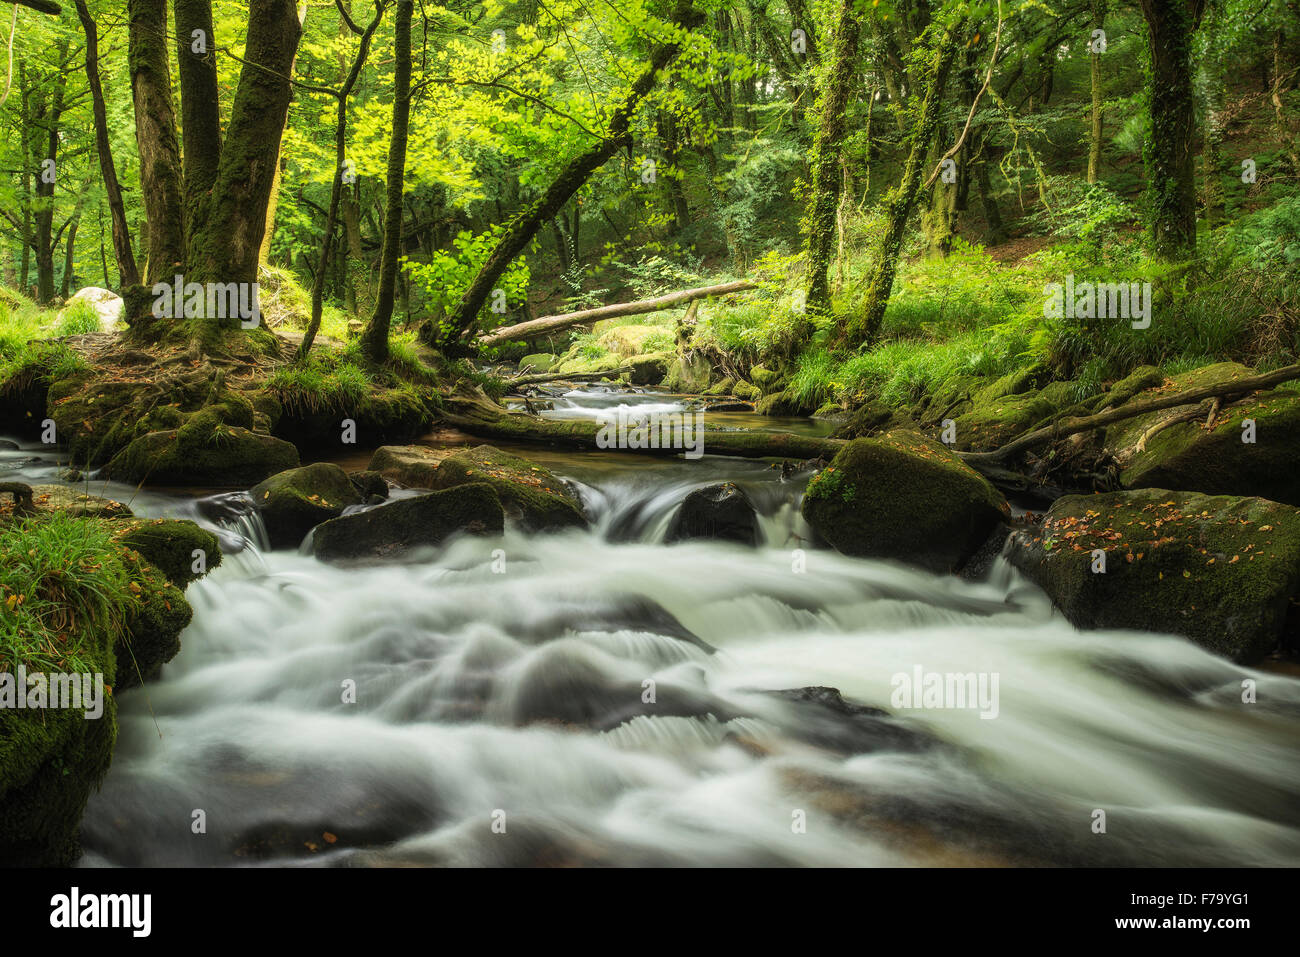 Landscape iamge of river flowing through lush green forest in Summer - Stock Image